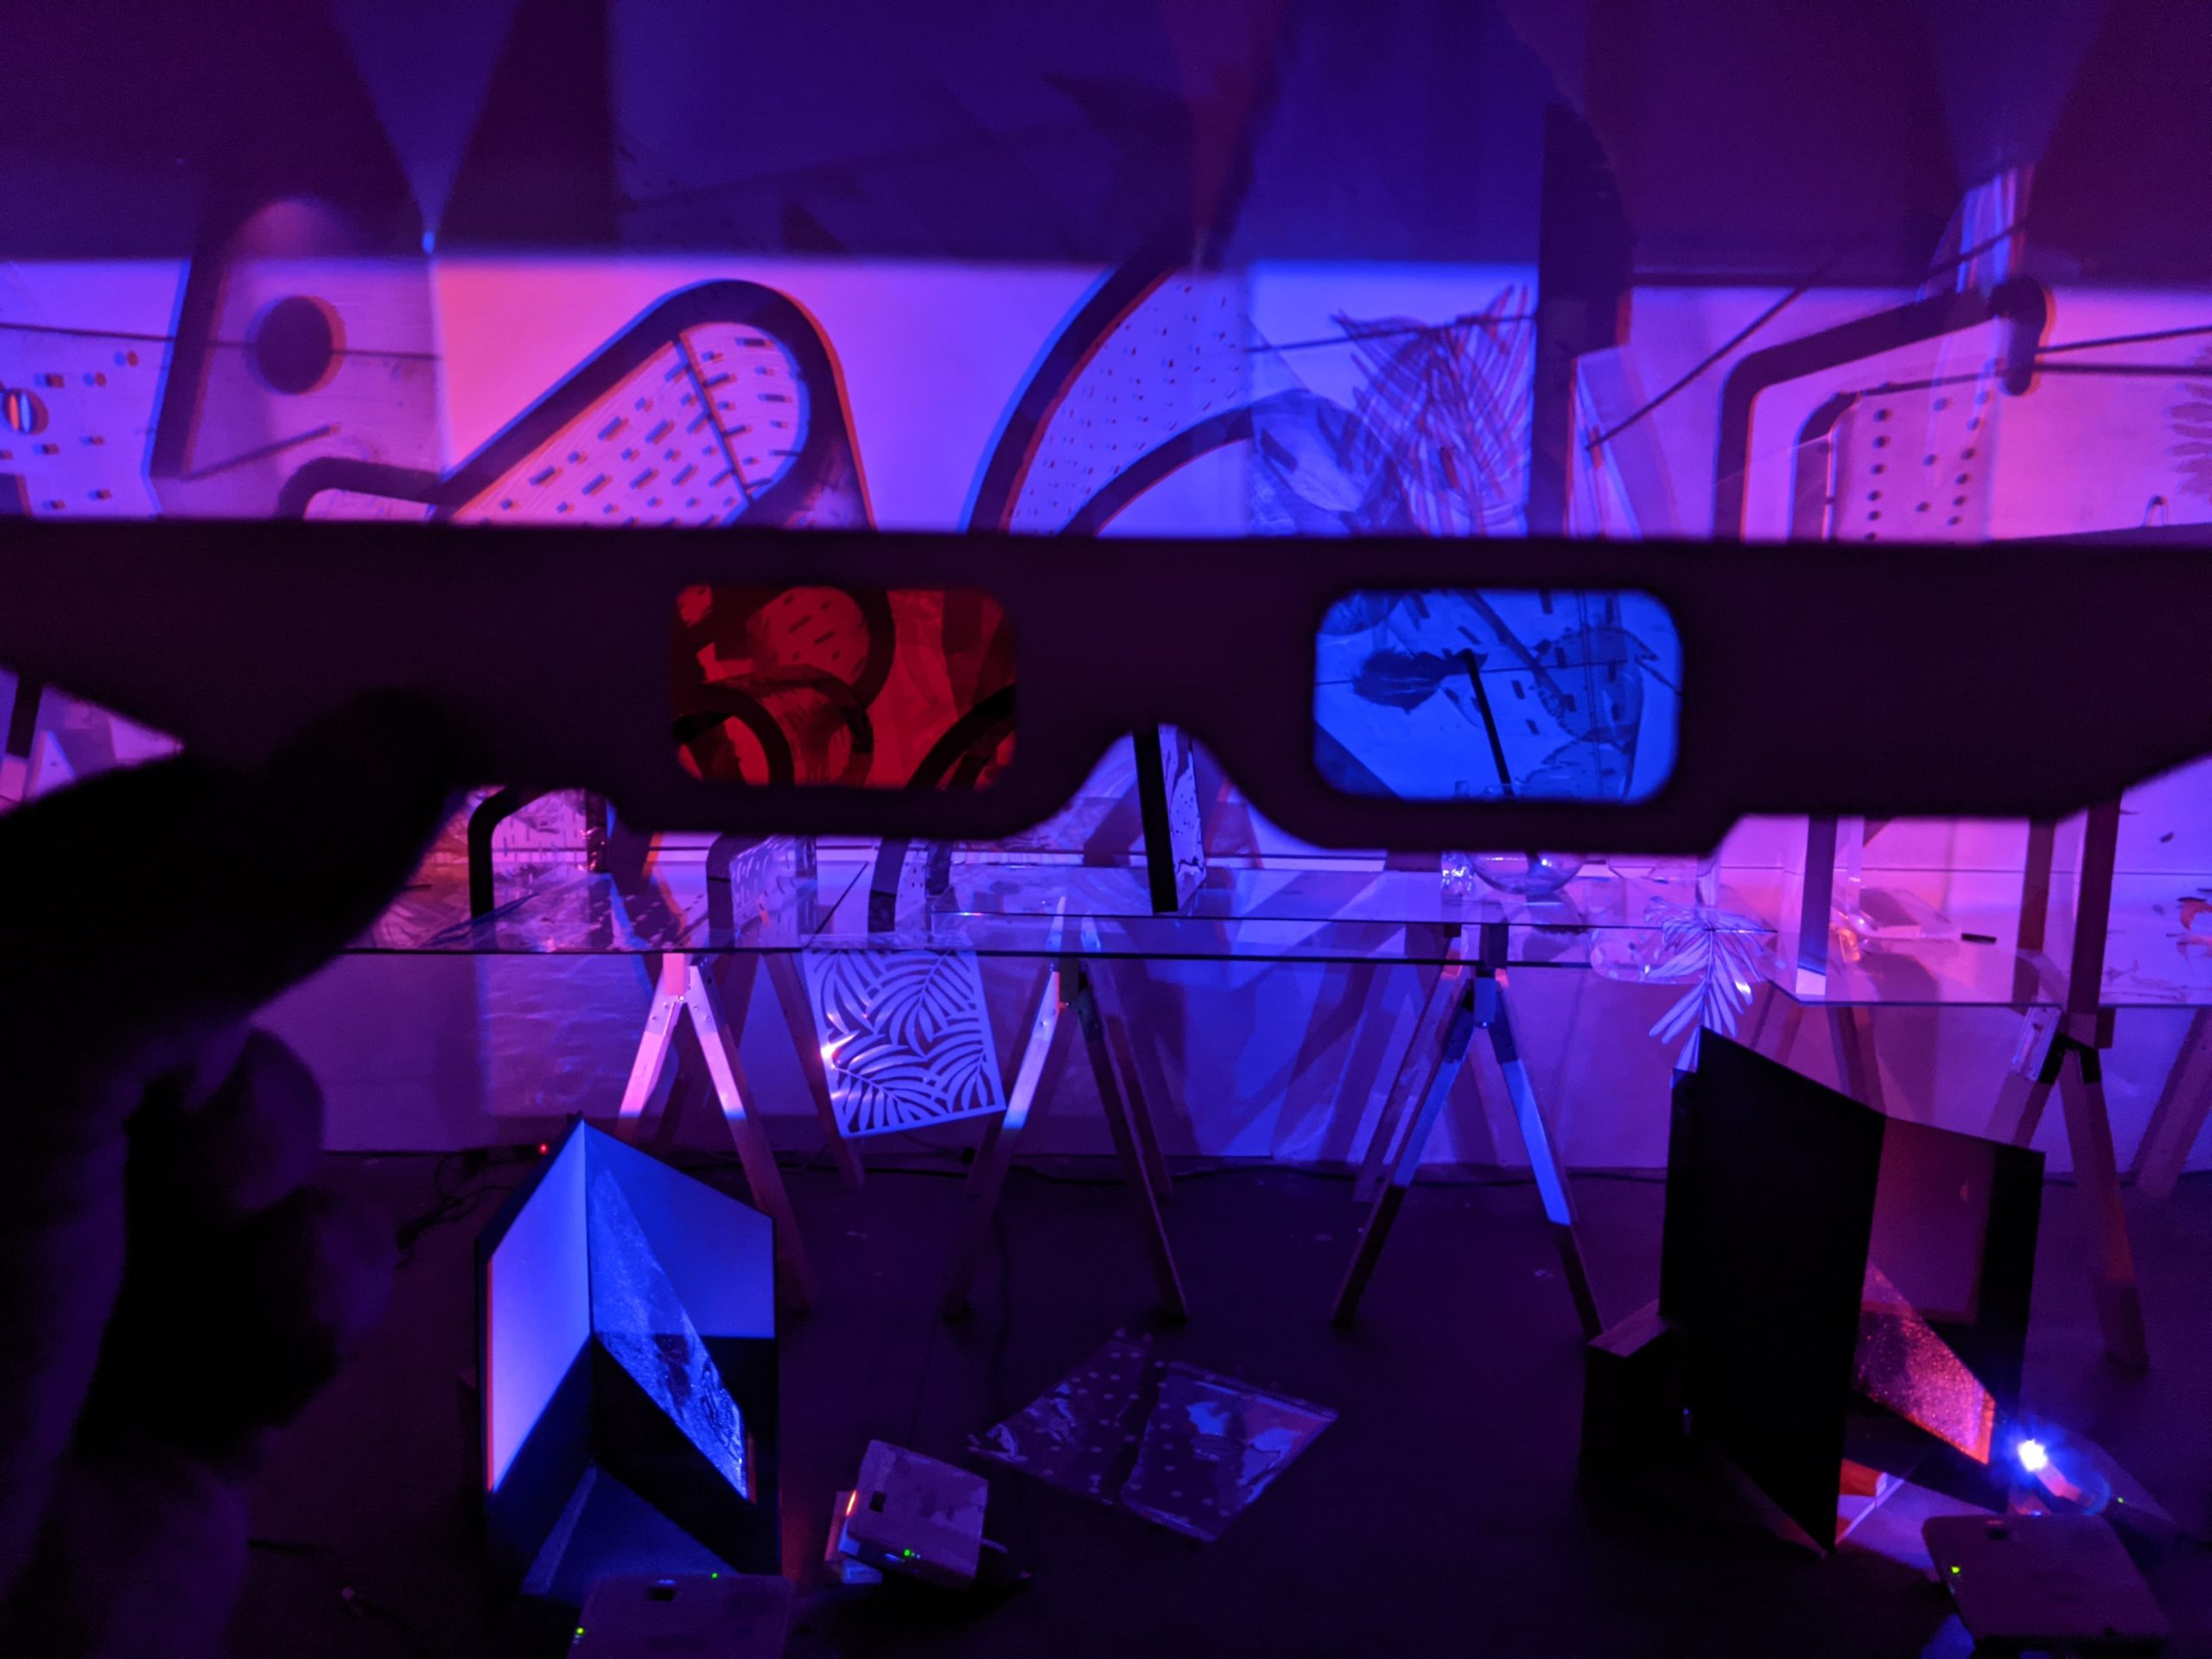 Blinn and Lambert NNAATTUURRAA MMOORRTTAA | A sprawling still life and a tableau of the objects' cast shadows, which, when viewed through 3D glasses, coalesce into a stereoscopic image.